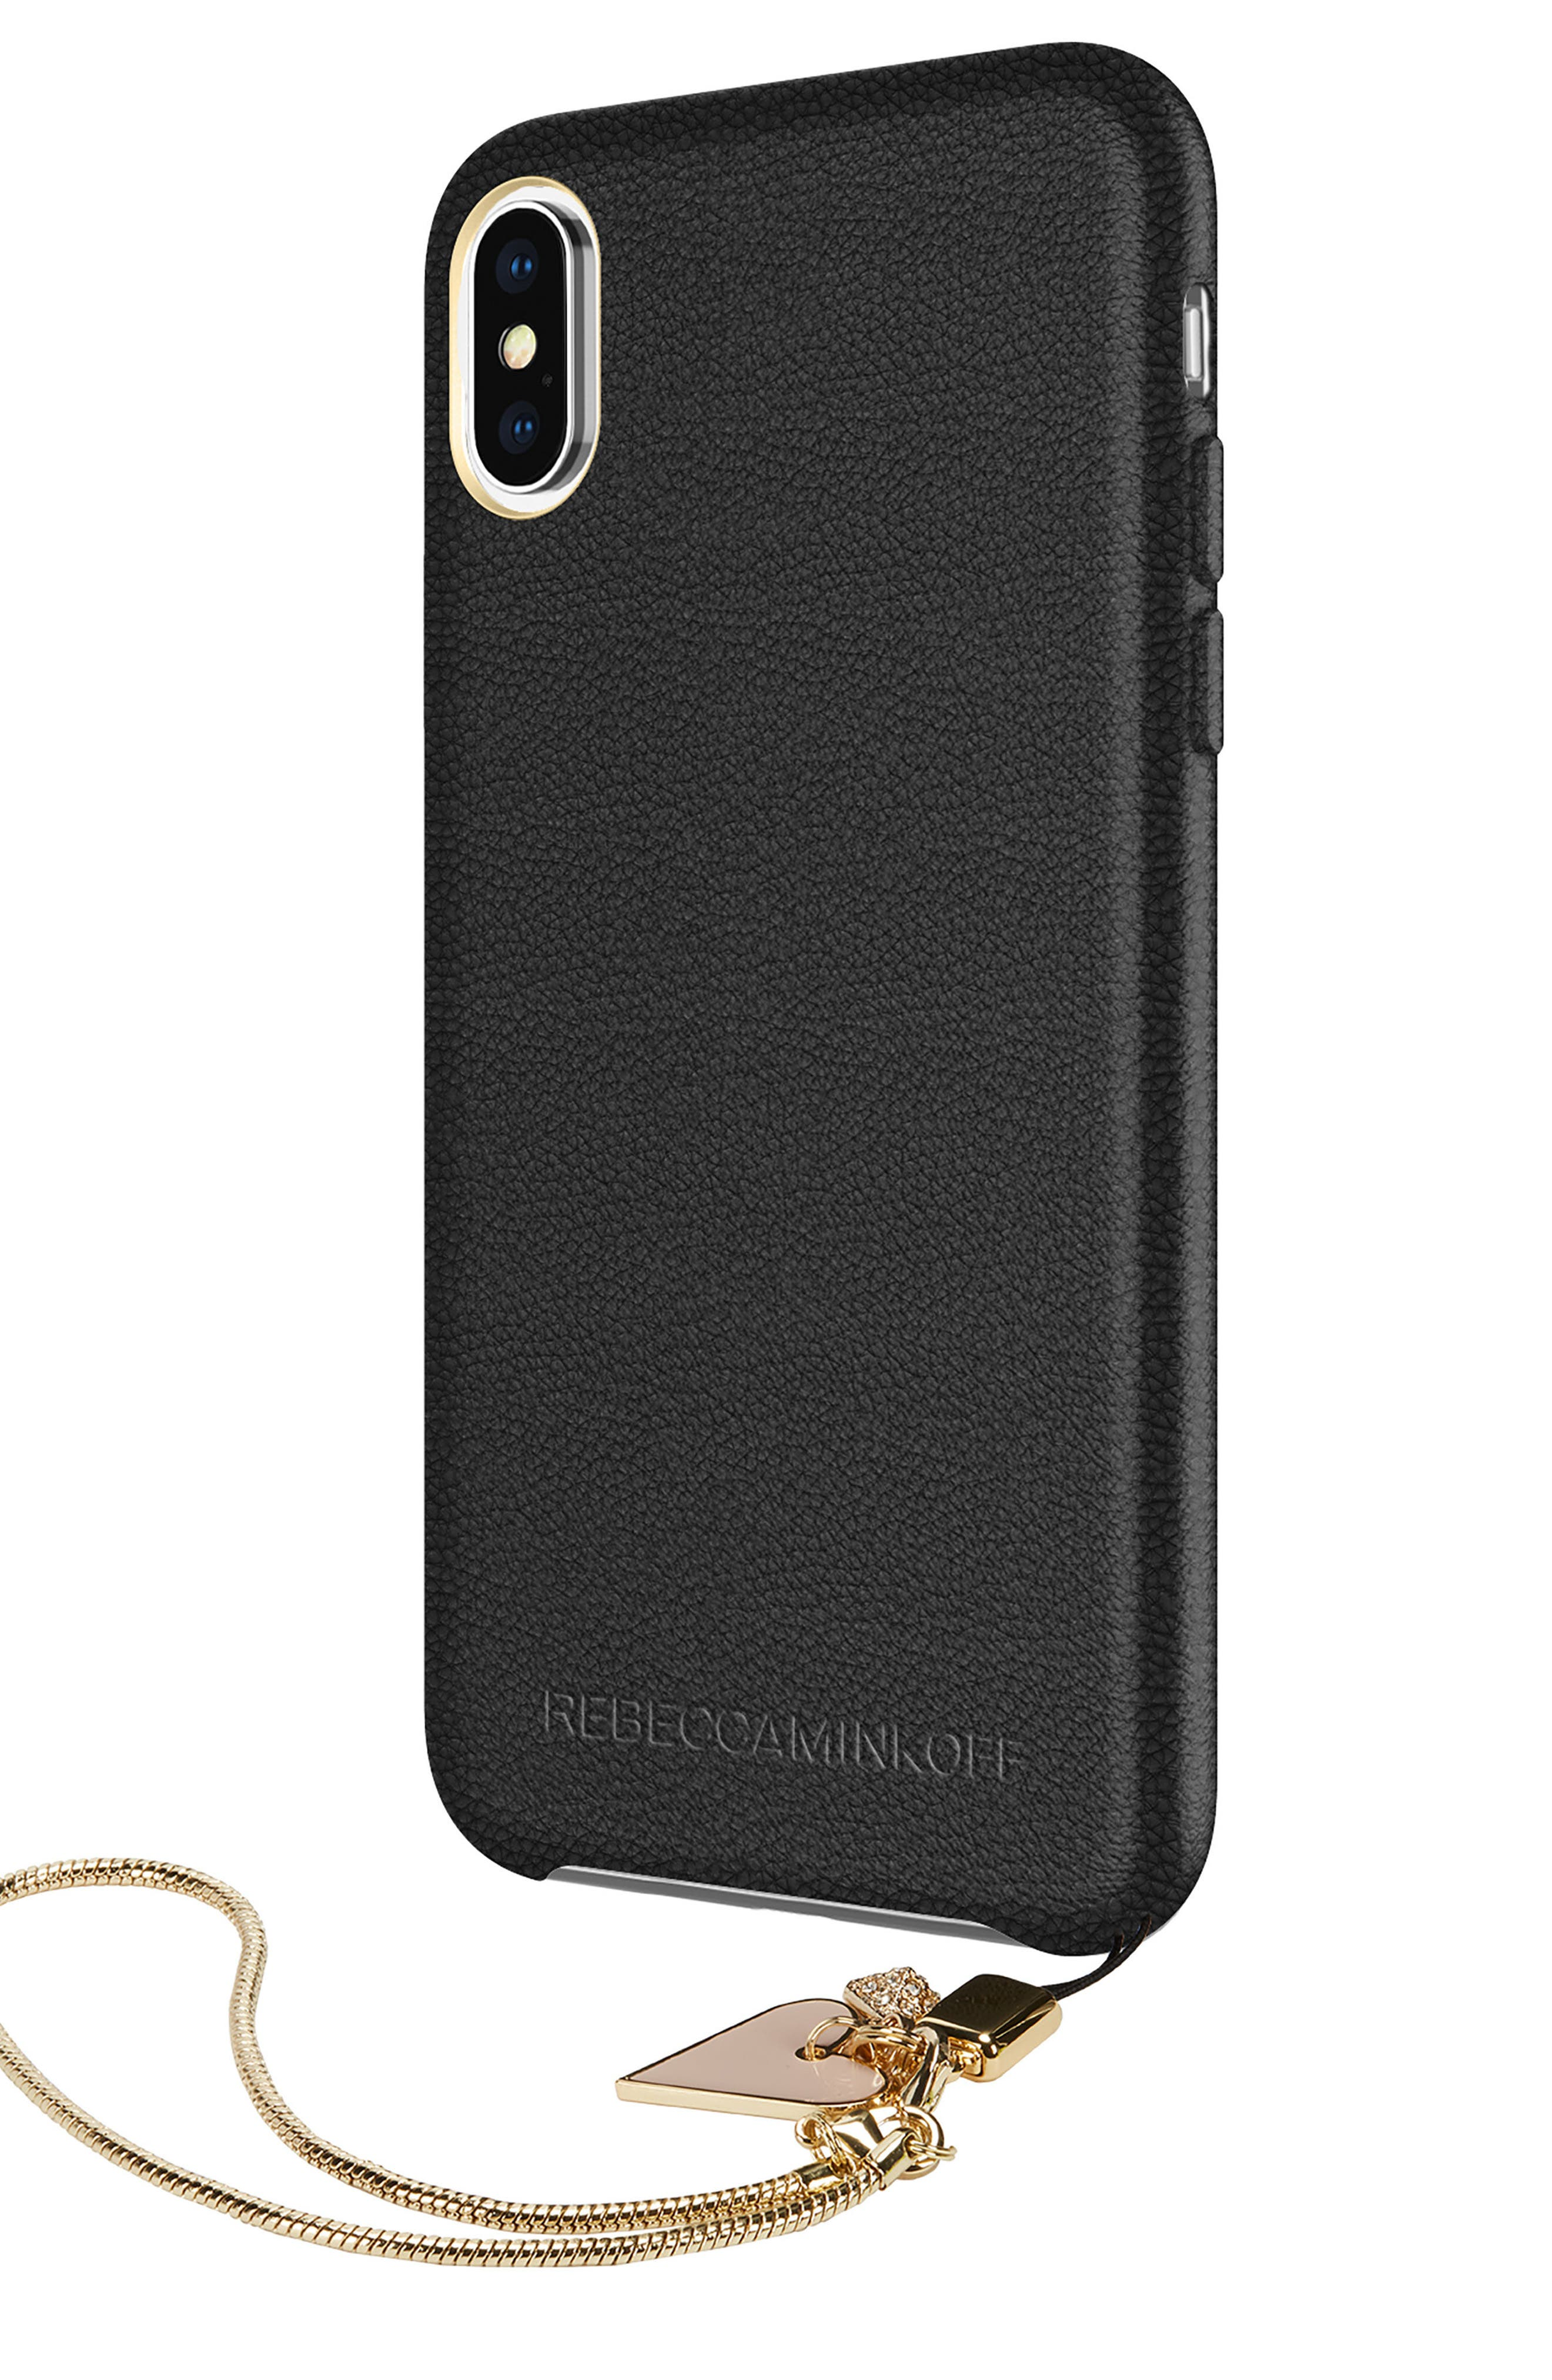 Leather iPhone X Wristlet Case with Charms,                             Alternate thumbnail 3, color,                             Black